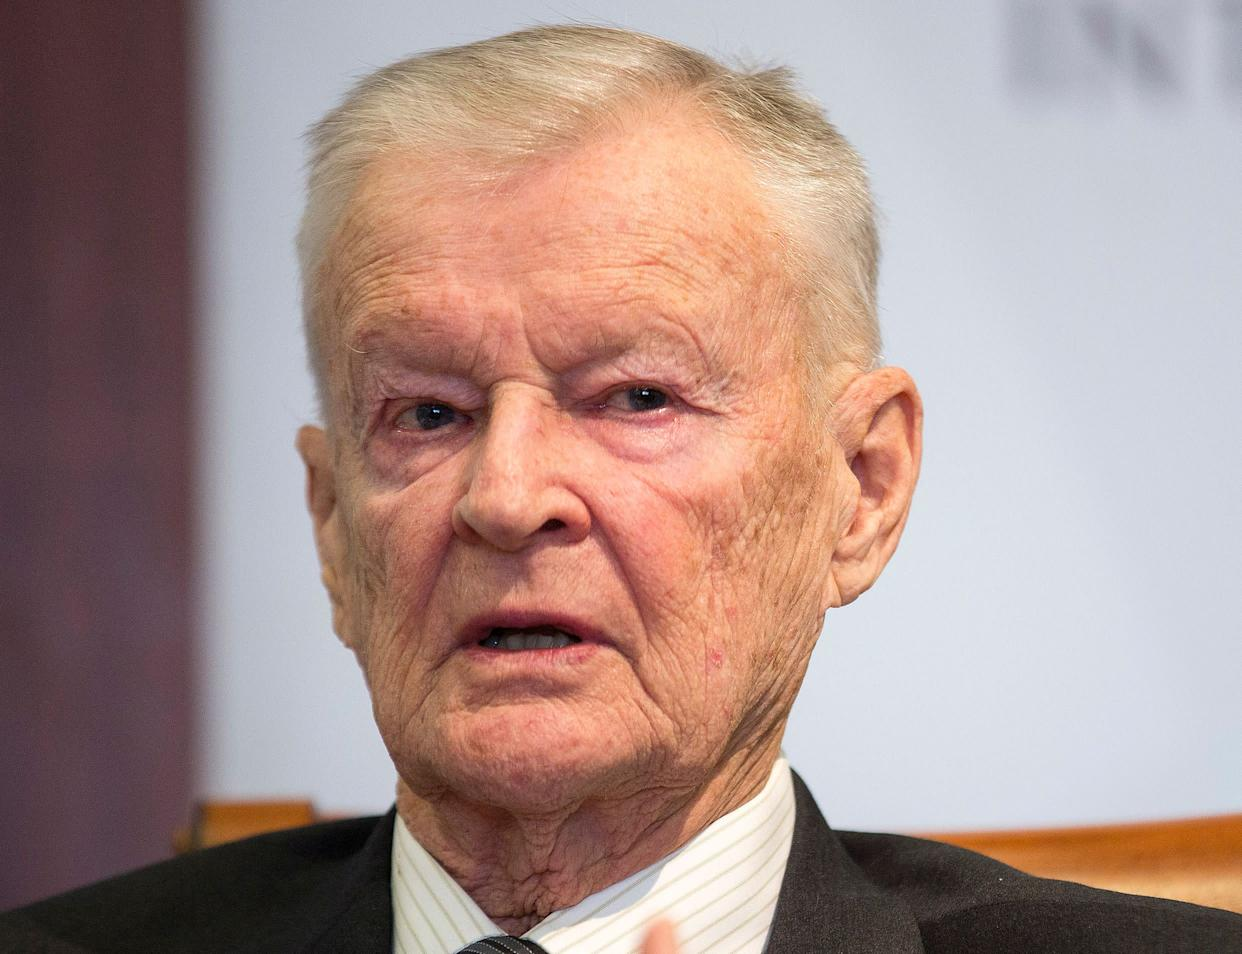 Zbigniew Brzezinski, who was President Jimmy Carter's national security adviser, died on May 26, 2017 at the age of 89.